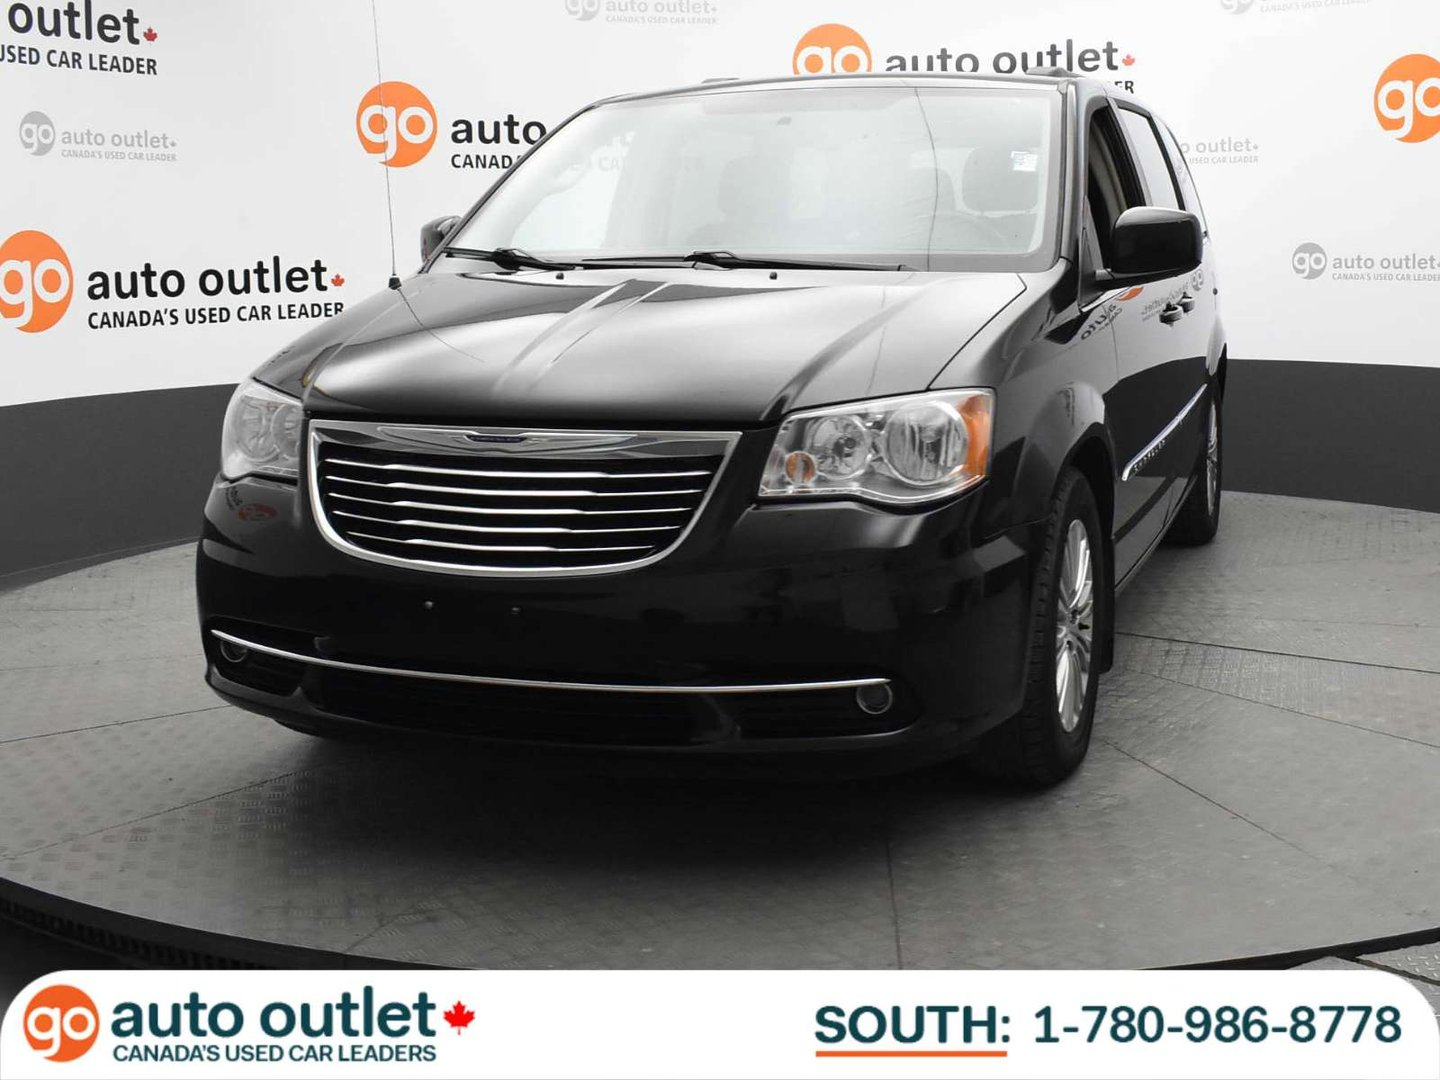 2013 Chrysler Town & Country Touring-L for sale in Leduc, Alberta